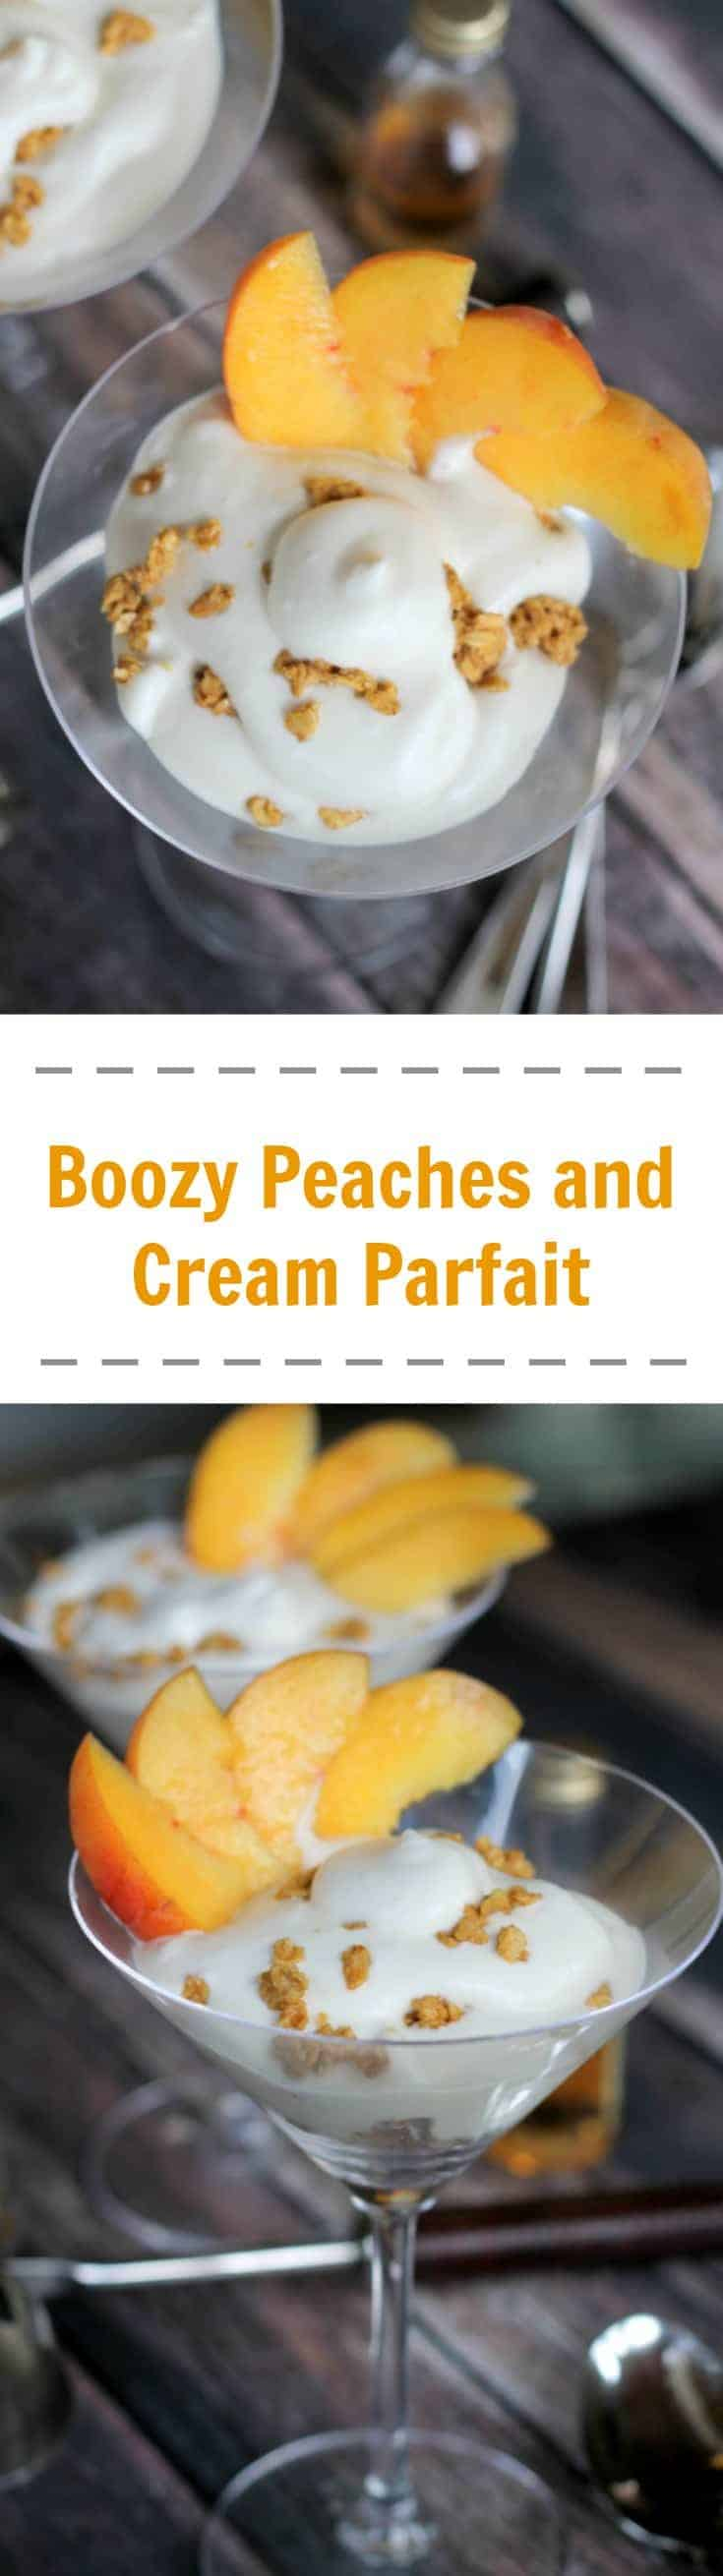 Boozy Peaches and Cream Parfait is the ideal indulgence after a meal, and with that kick of bourbon or whiskey - this is a great boozy dessert for adults. #parfait #parfaitrecipe #alcoholdessert